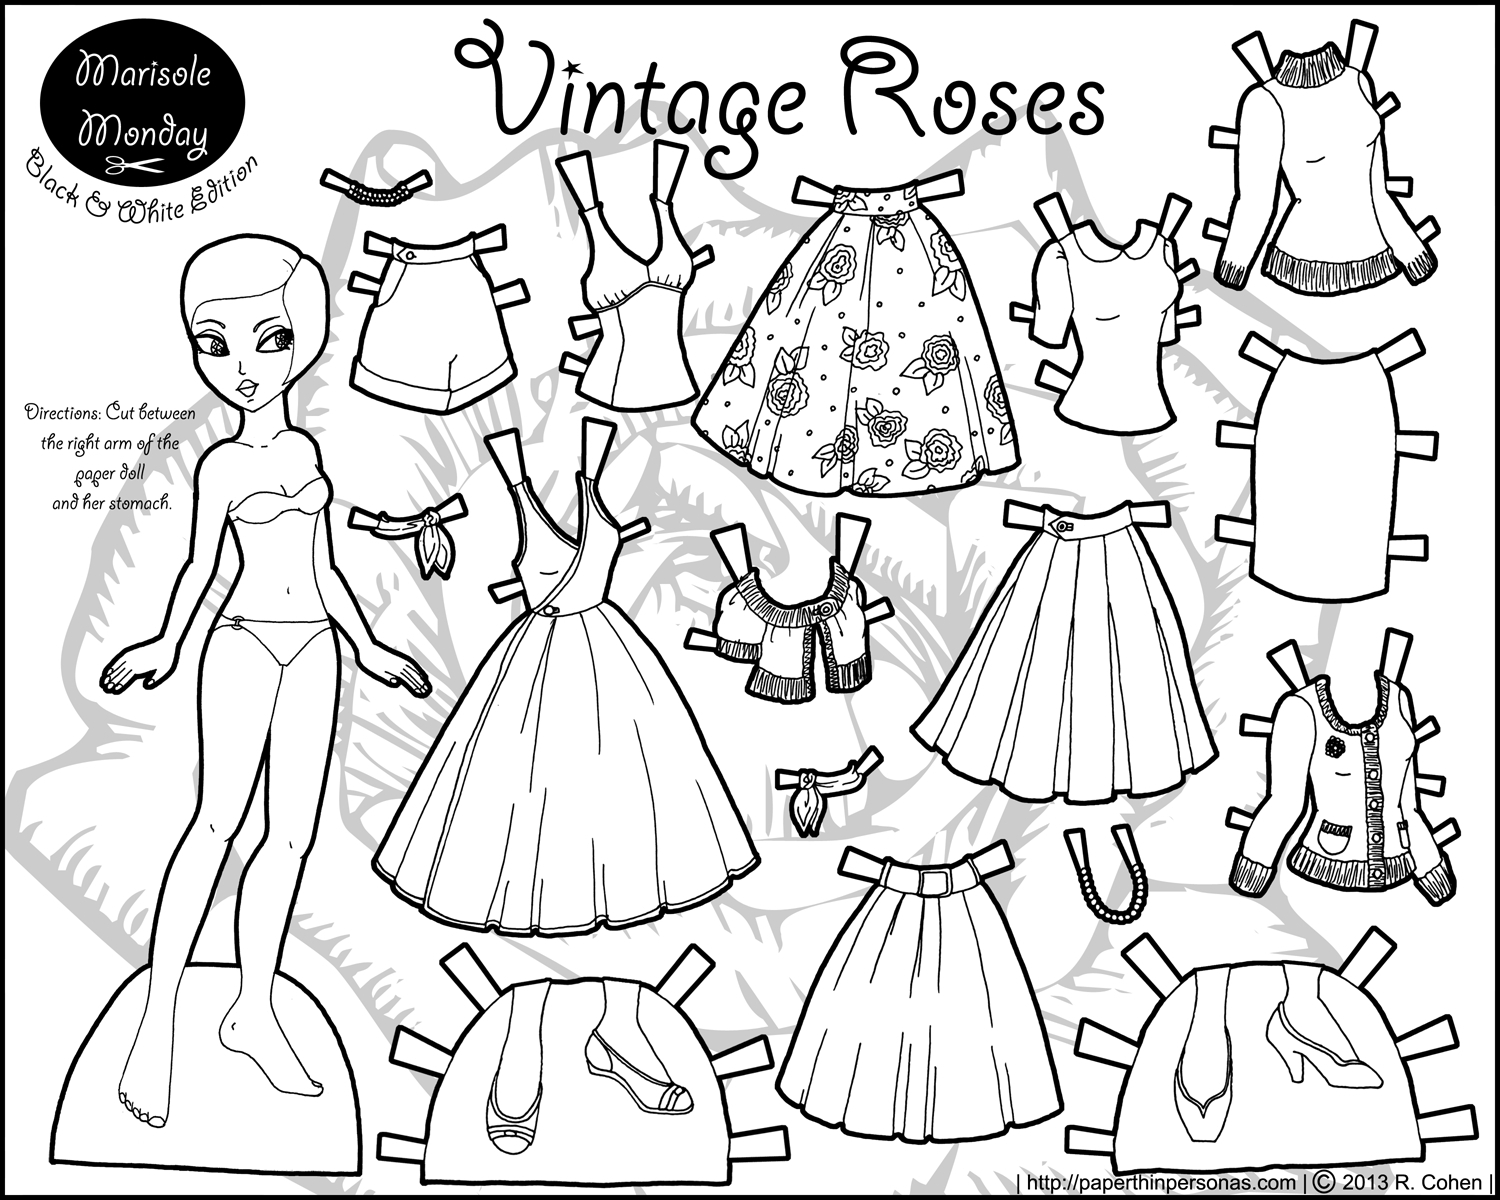 Marisole Monday: Vintage Roses | Coloring! | Paper Dolls, Paper - Printable Paper Dolls To Color Free